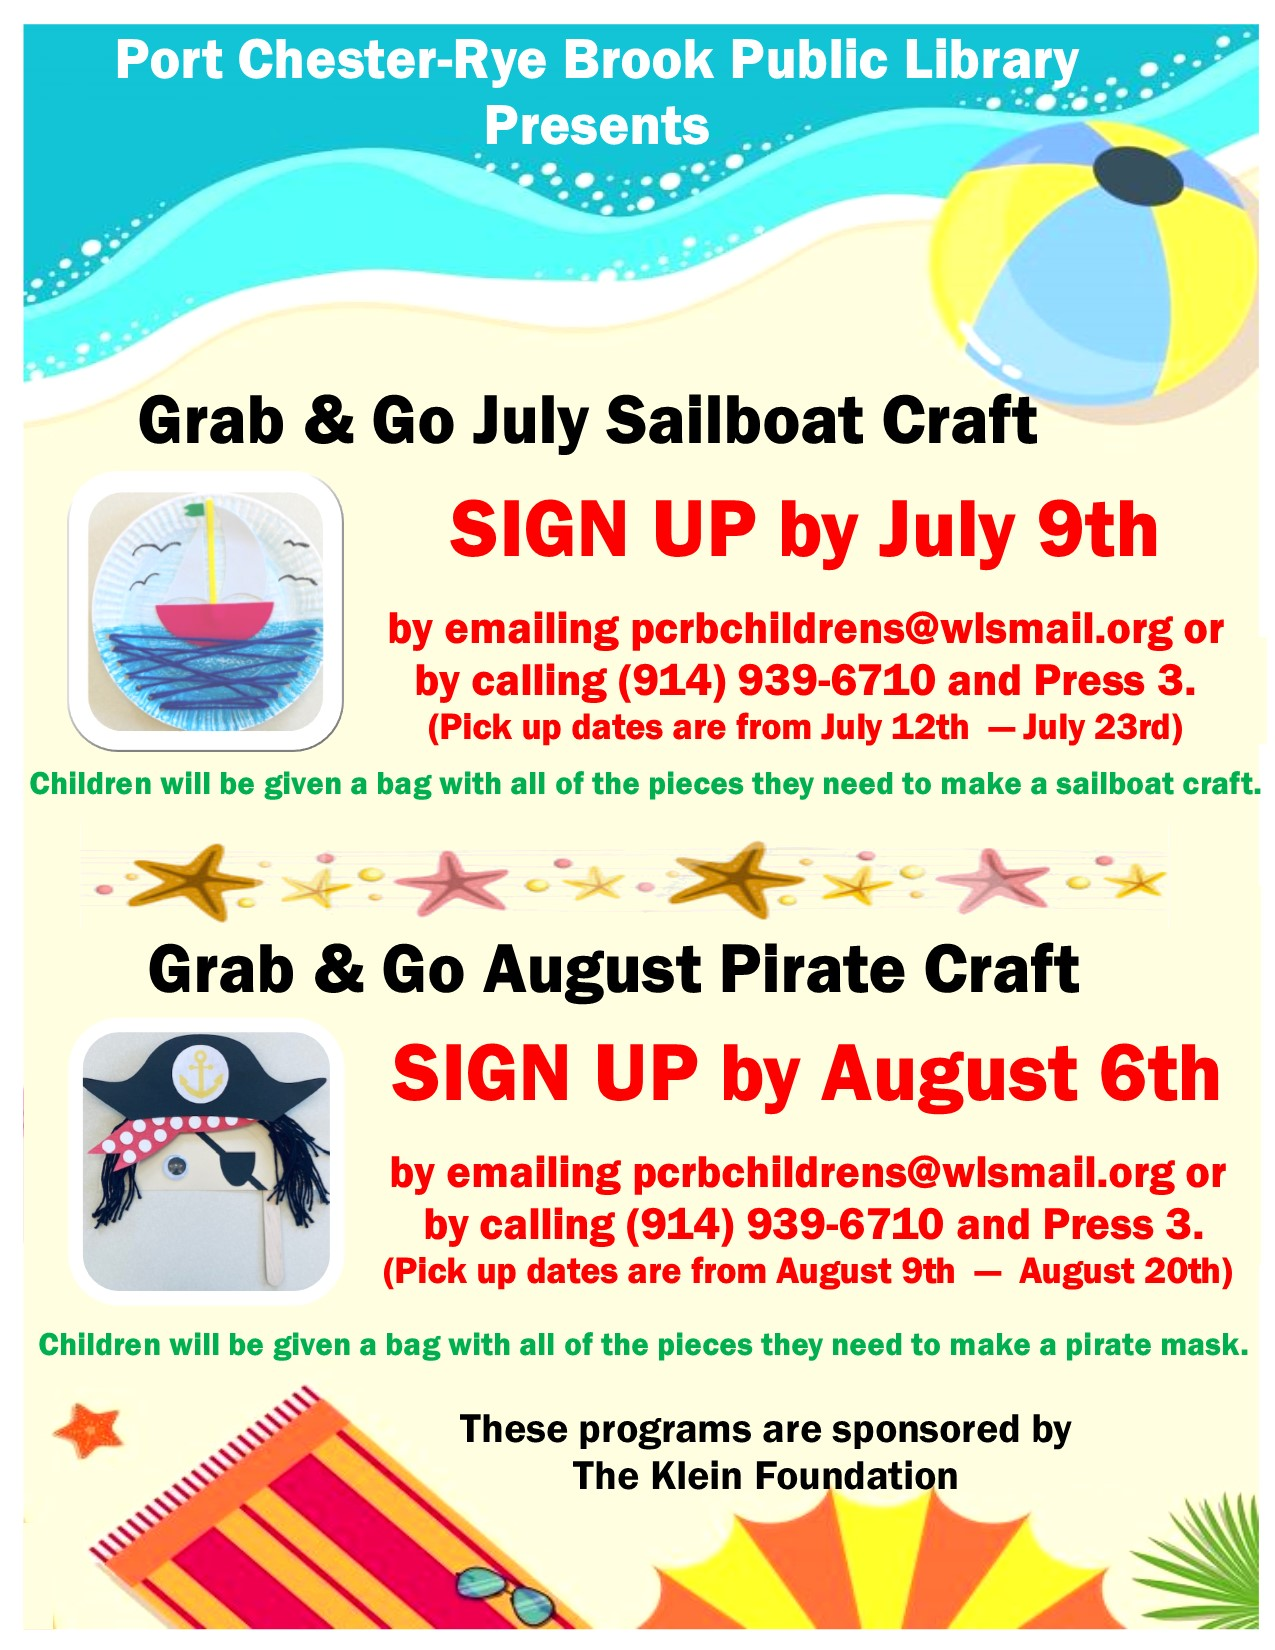 Summer Grab and Go Craft Pickup at Port Chester-Rye Brook Public Library